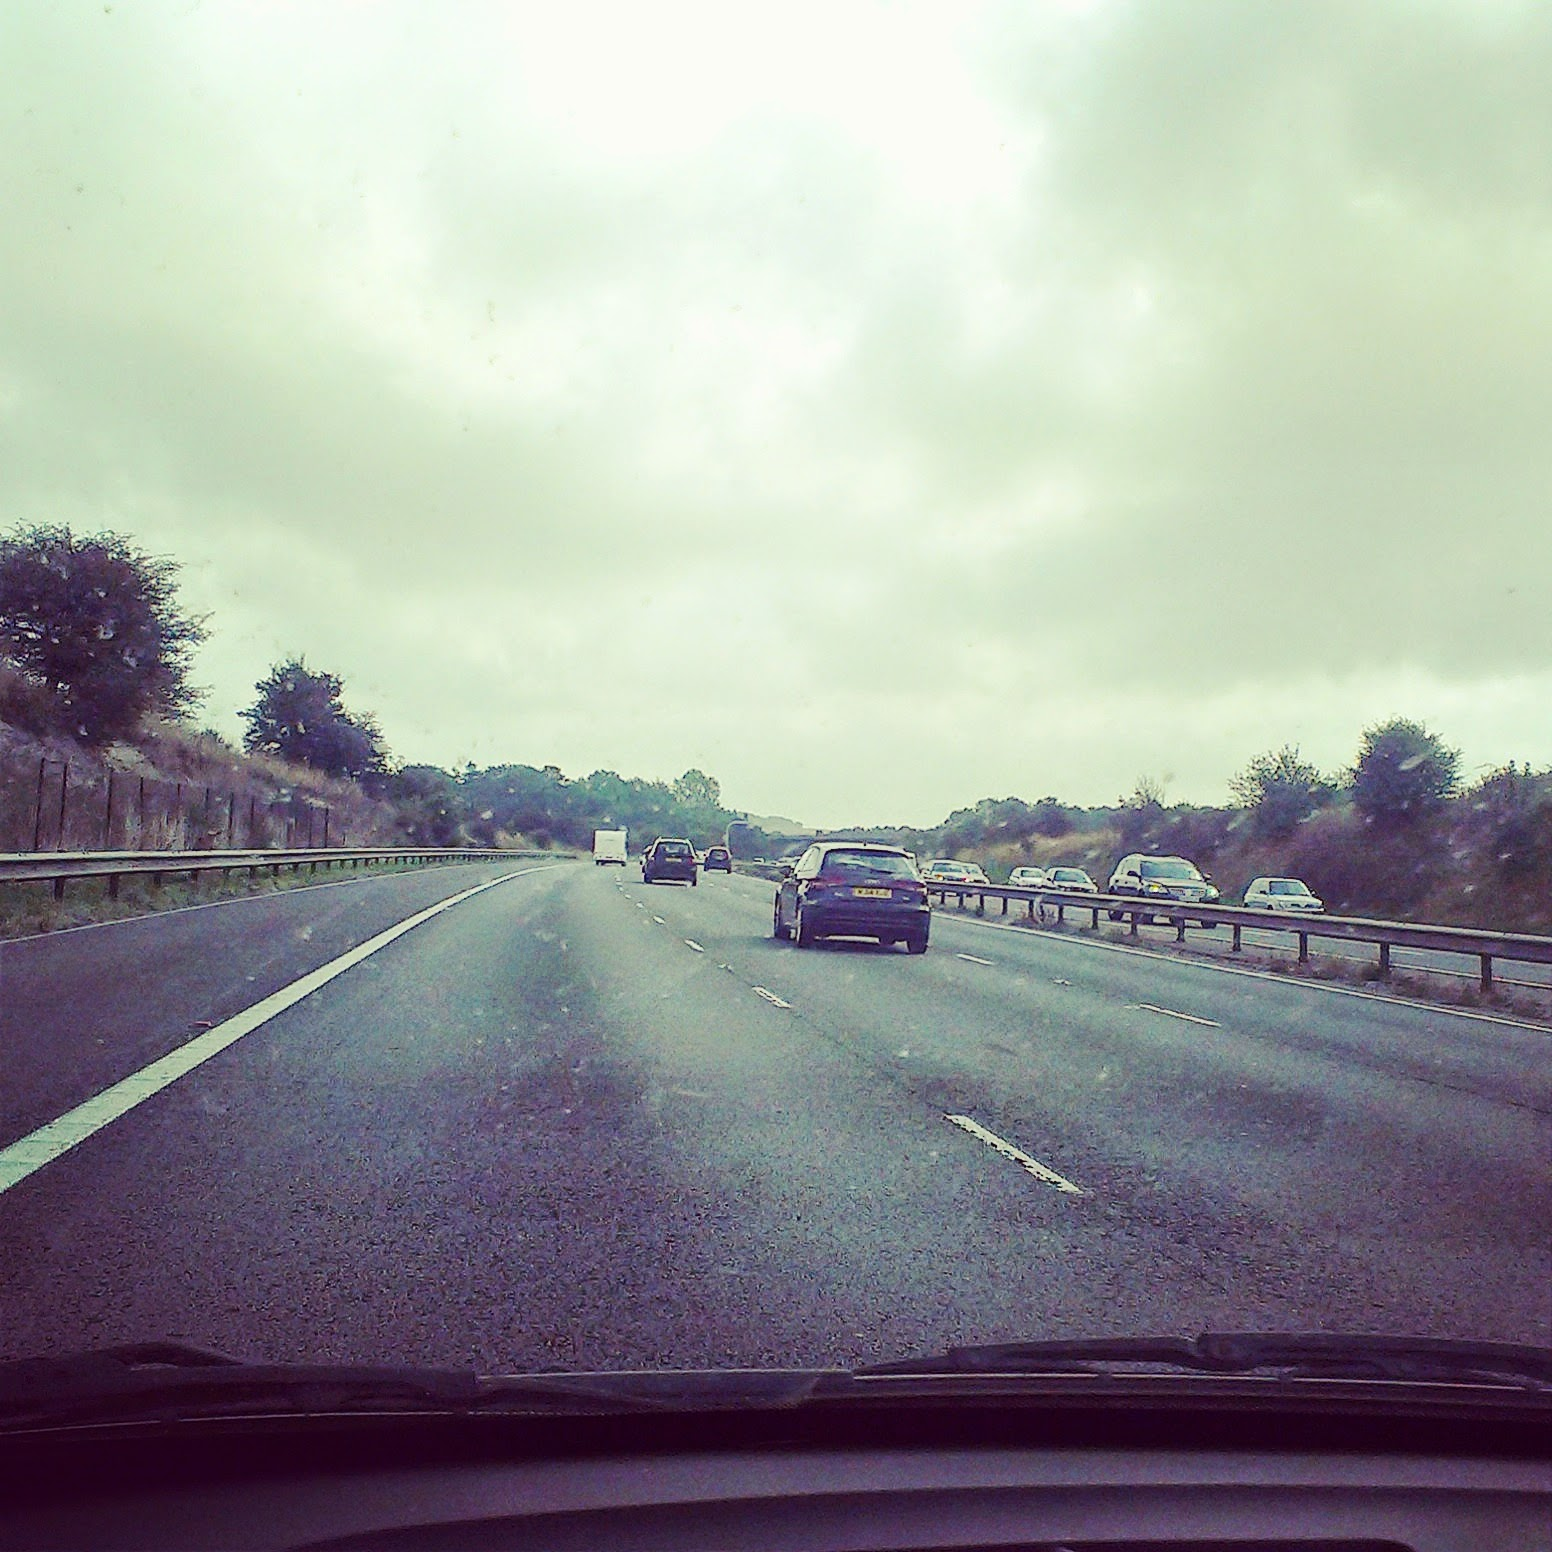 11am - driving along the motorway